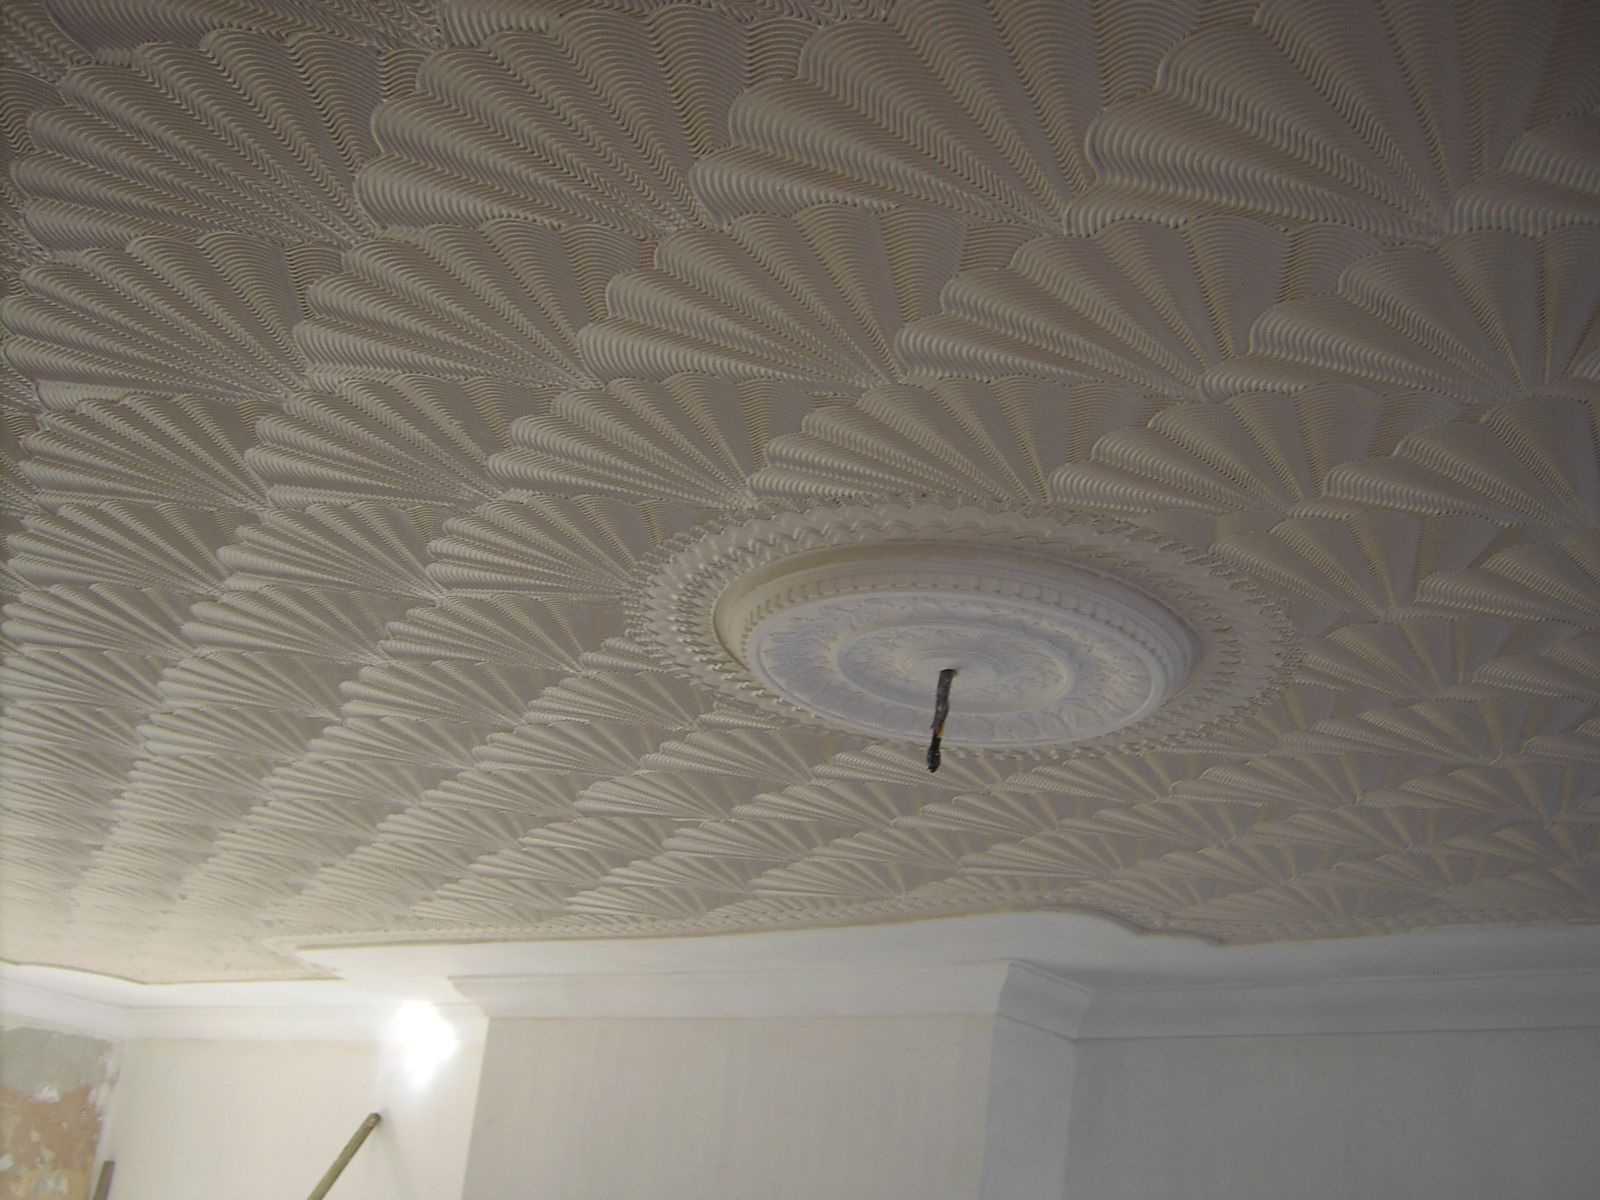 drywall texture finish mud plaster. how to cure-fix porous dry